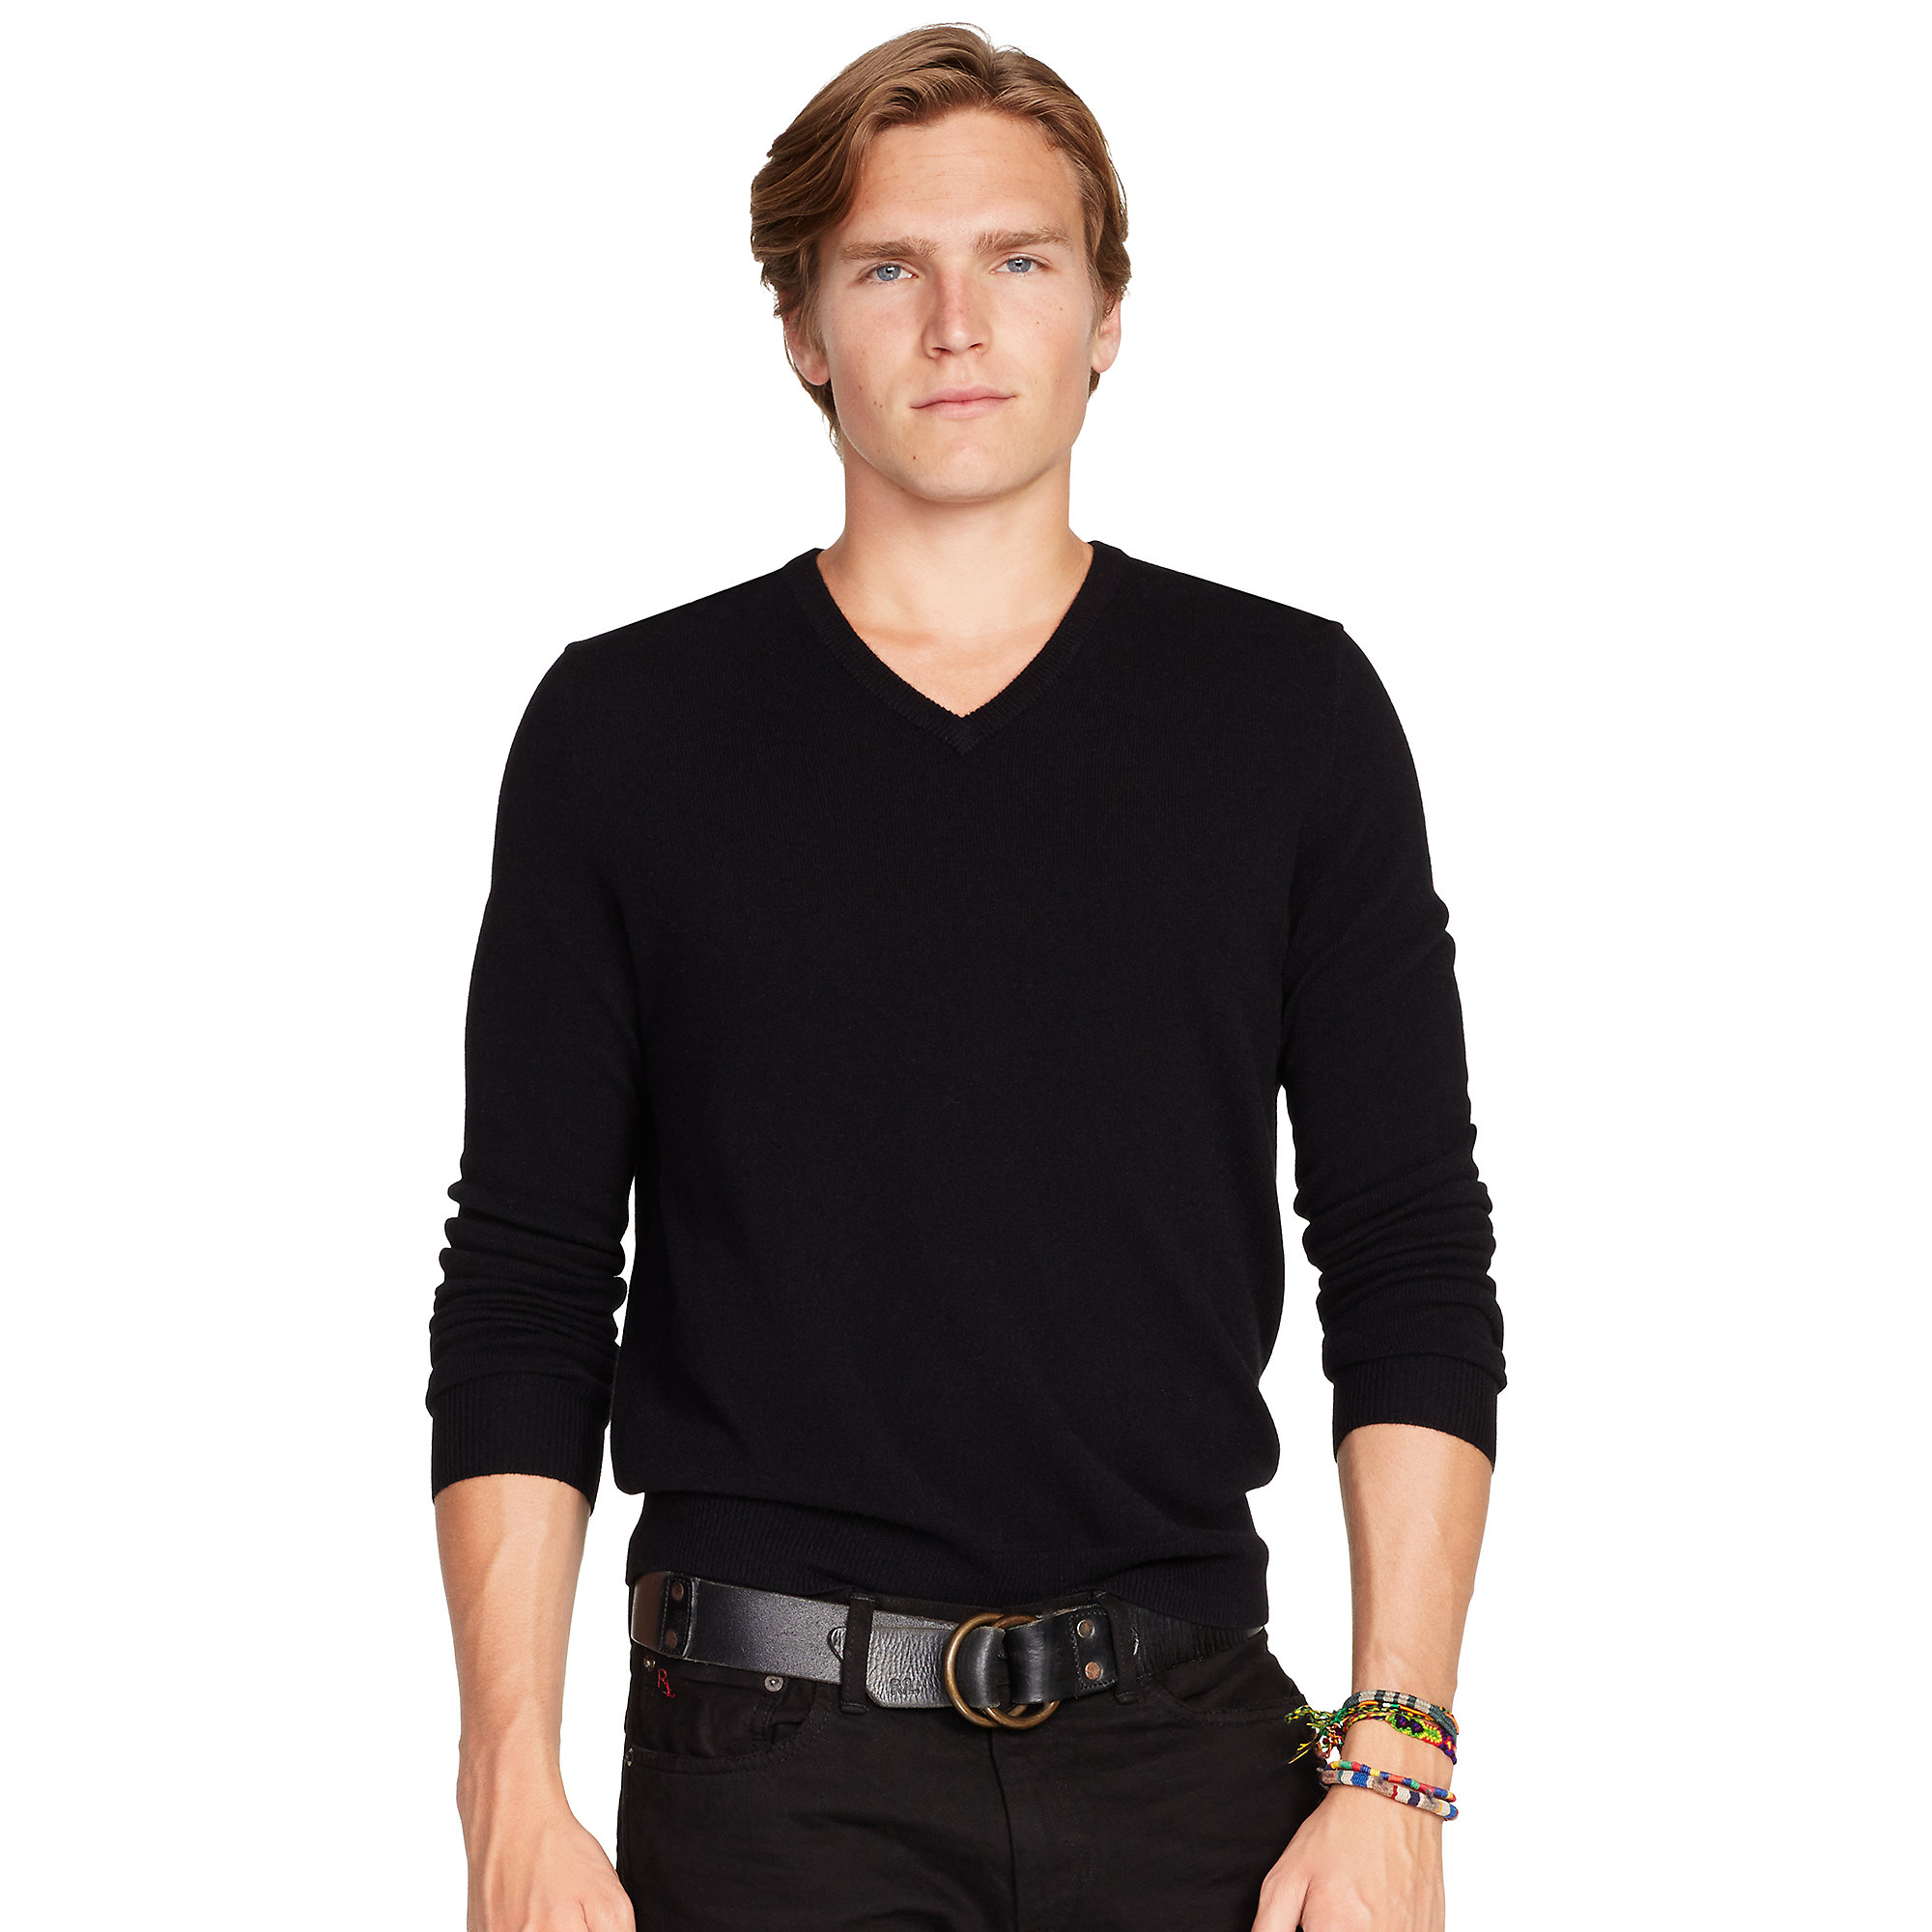 Find great deals on eBay for mens polo v neck sweater. Shop with confidence.